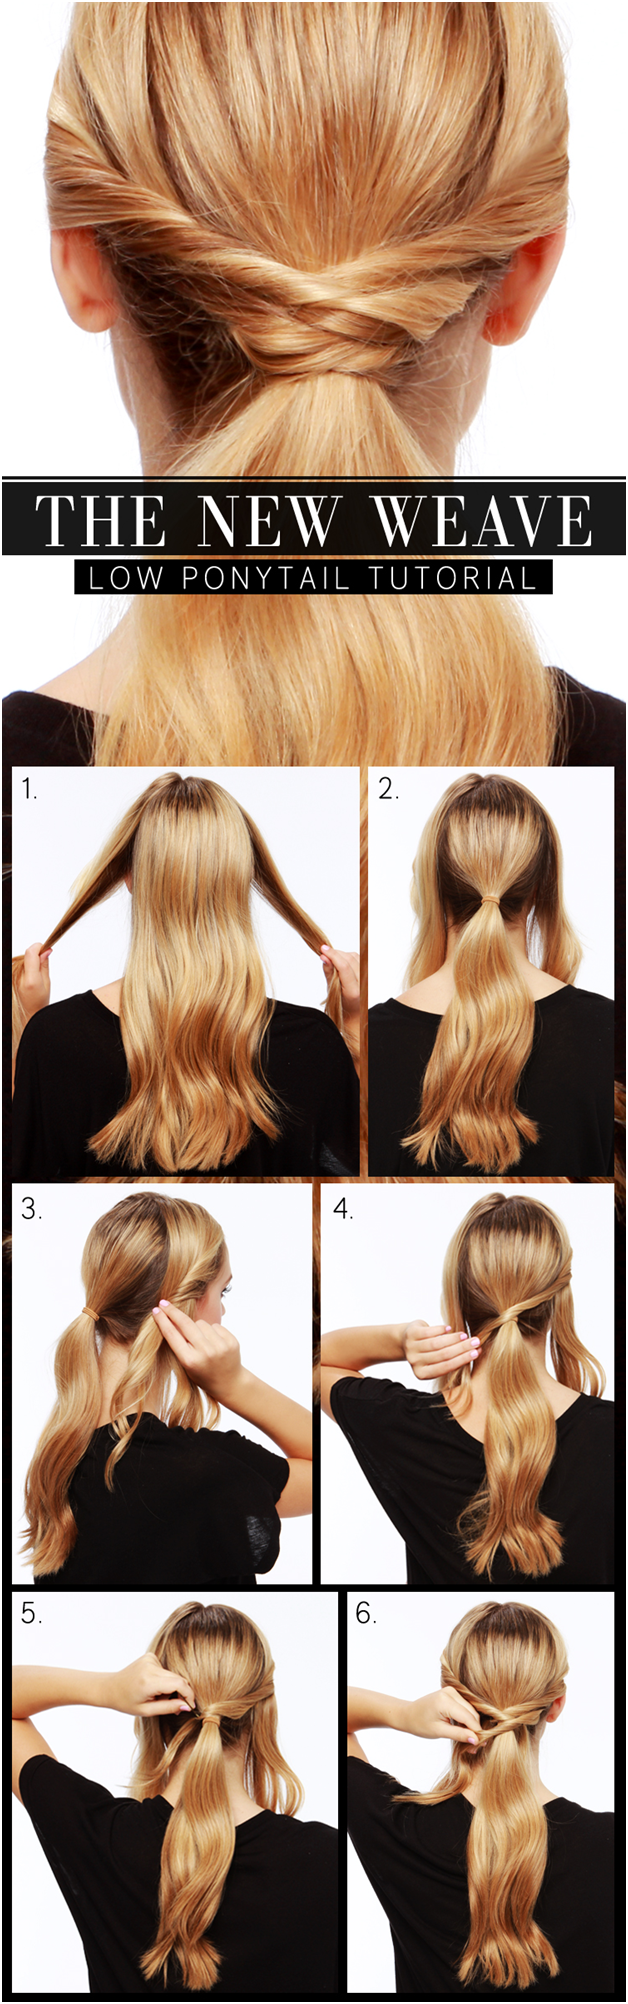 weaved-styled-low-ponytail